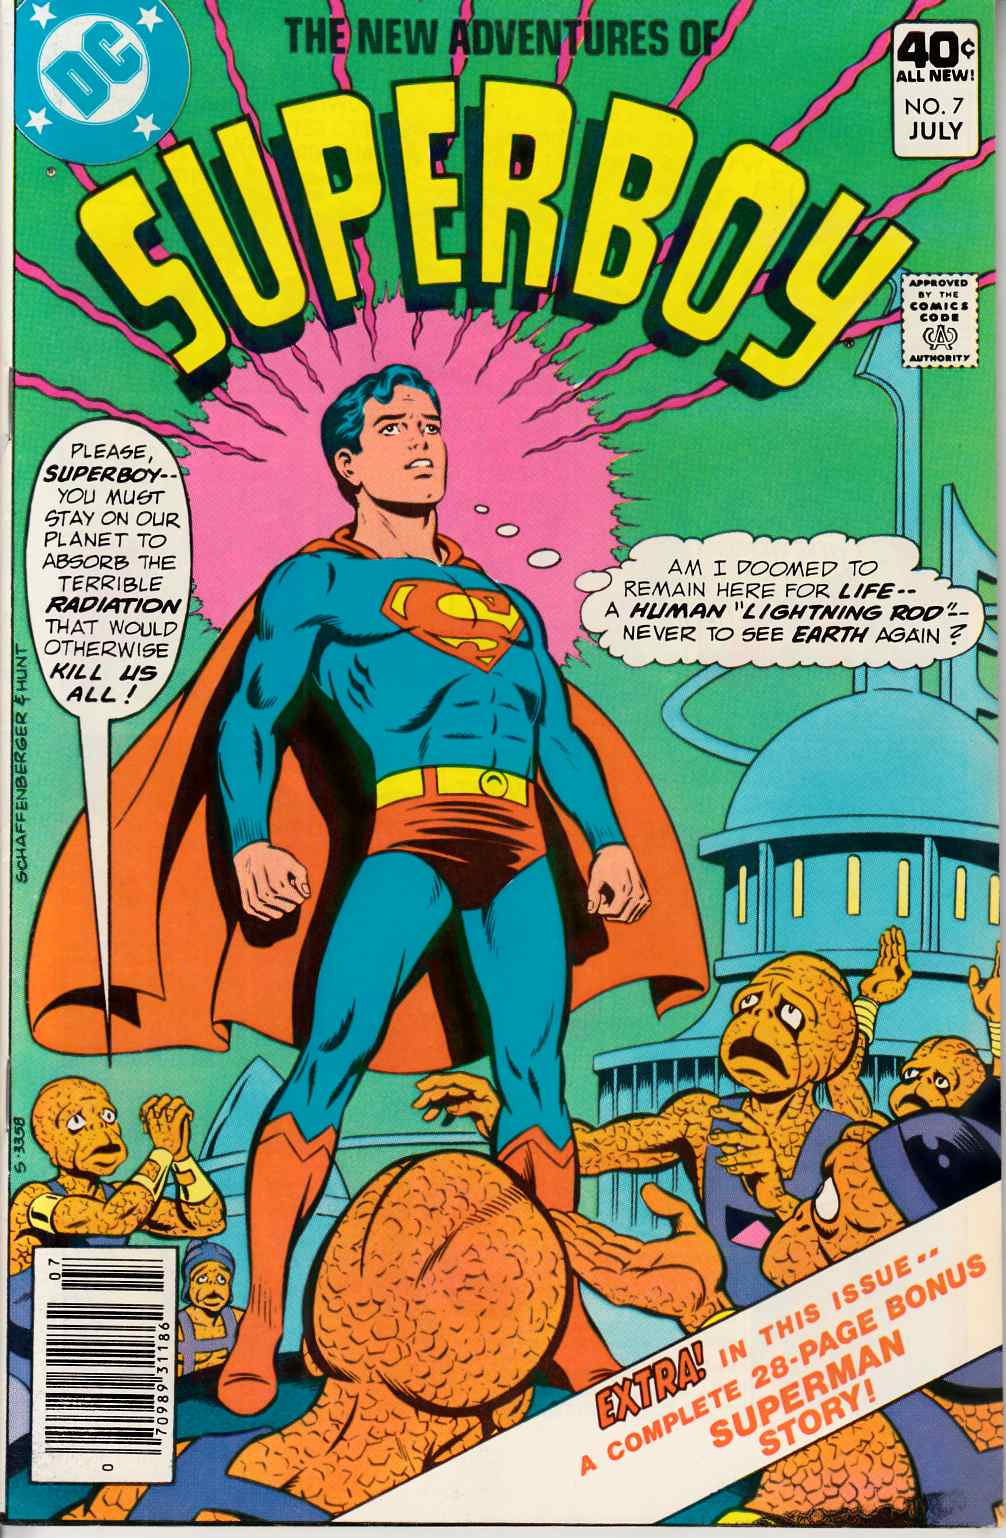 New Adventures of Superboy #7 Very Fine (8.0) [DC Comic] THUMBNAIL